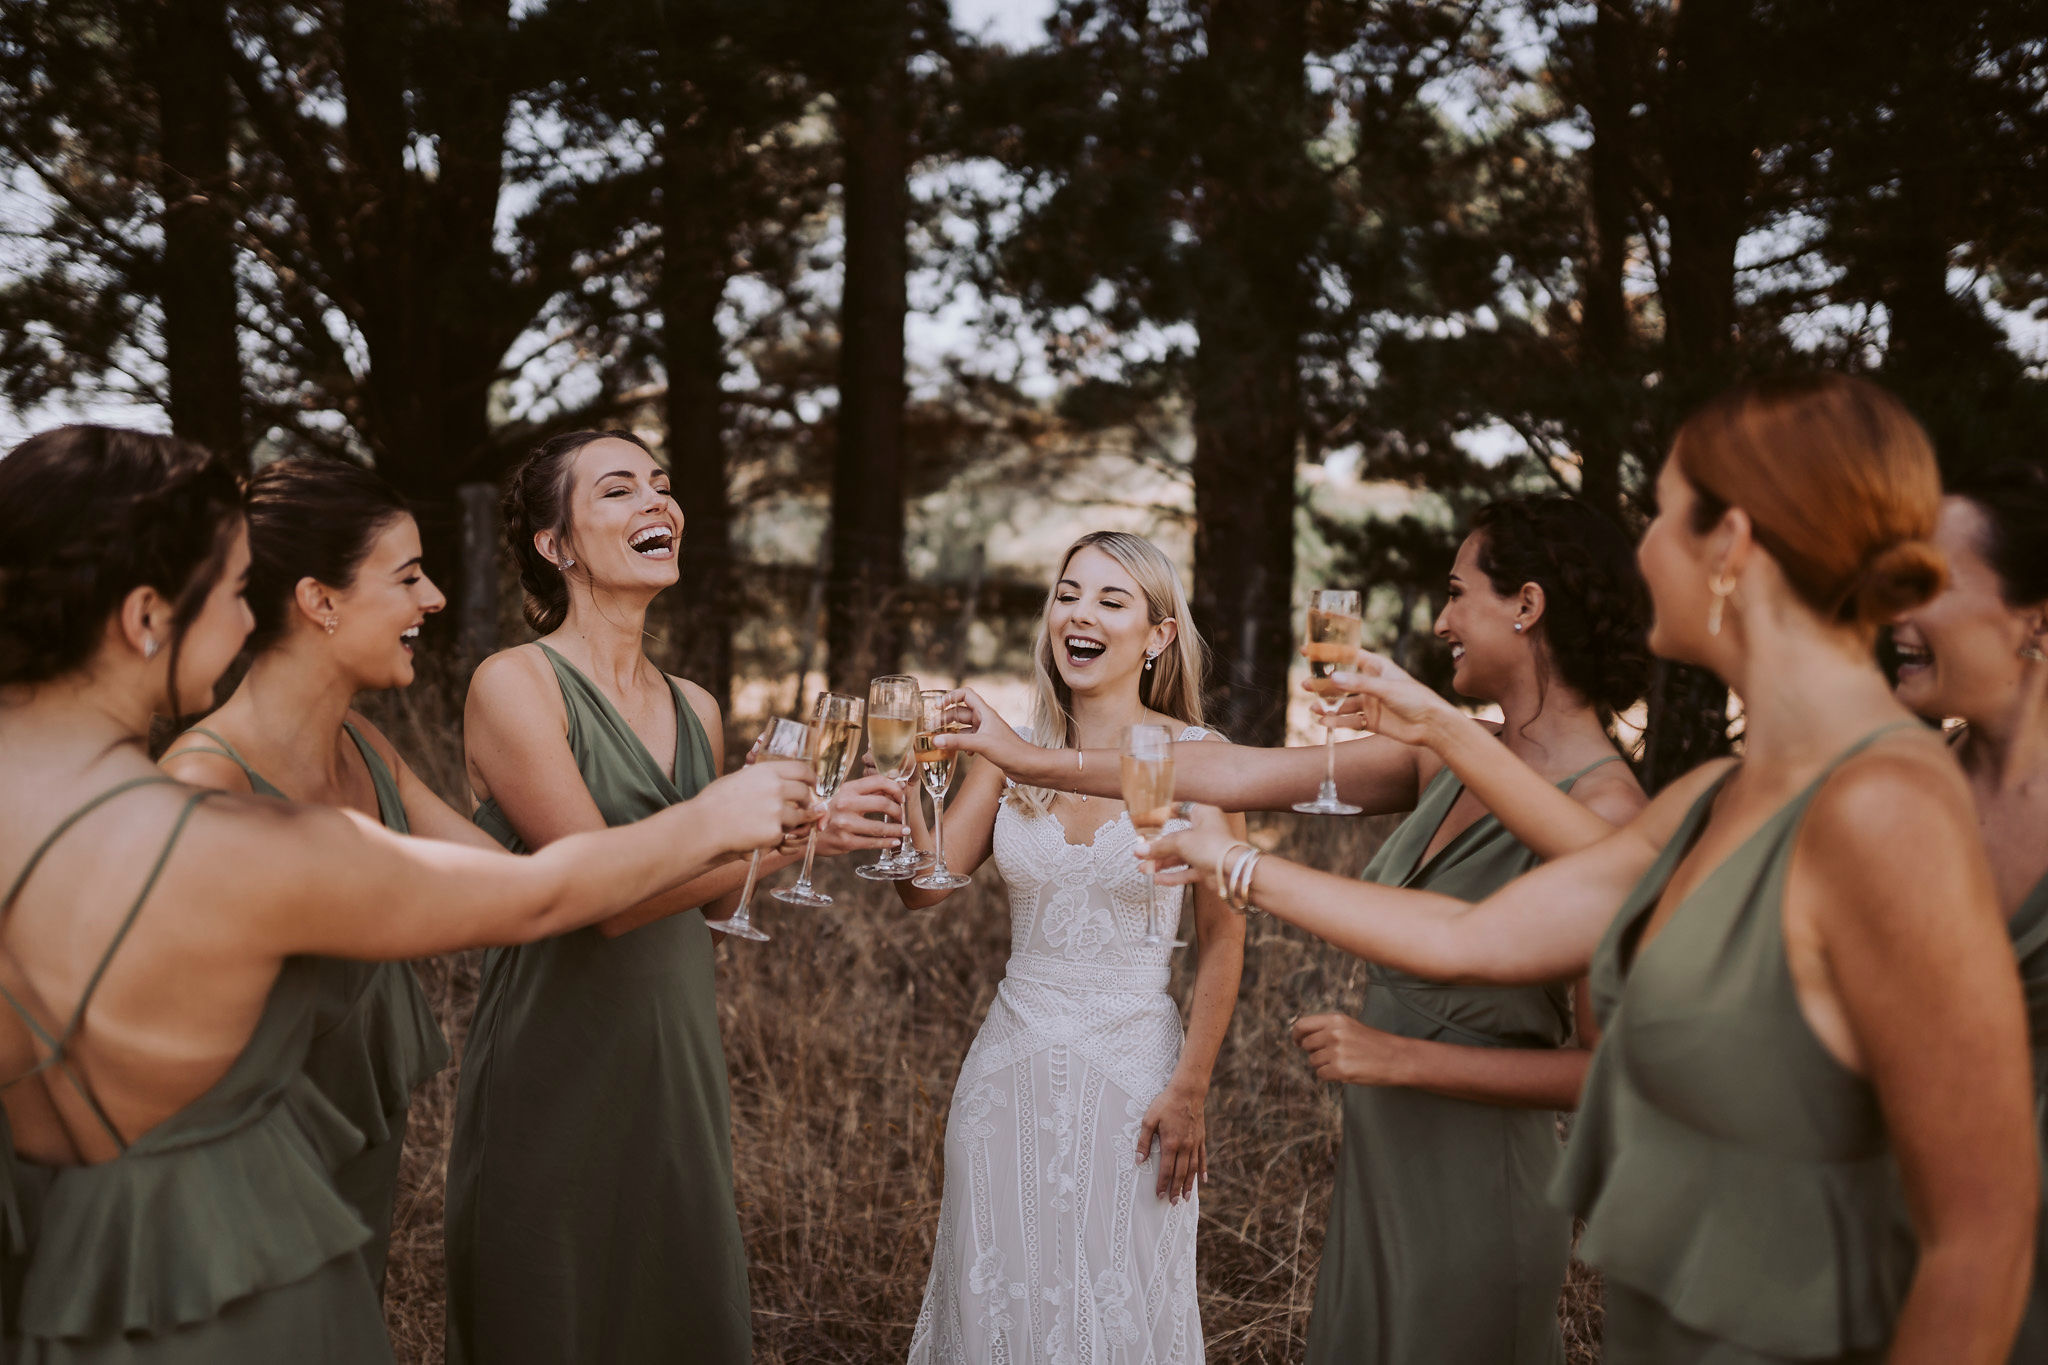 LeaveHerWilderBridesmaids